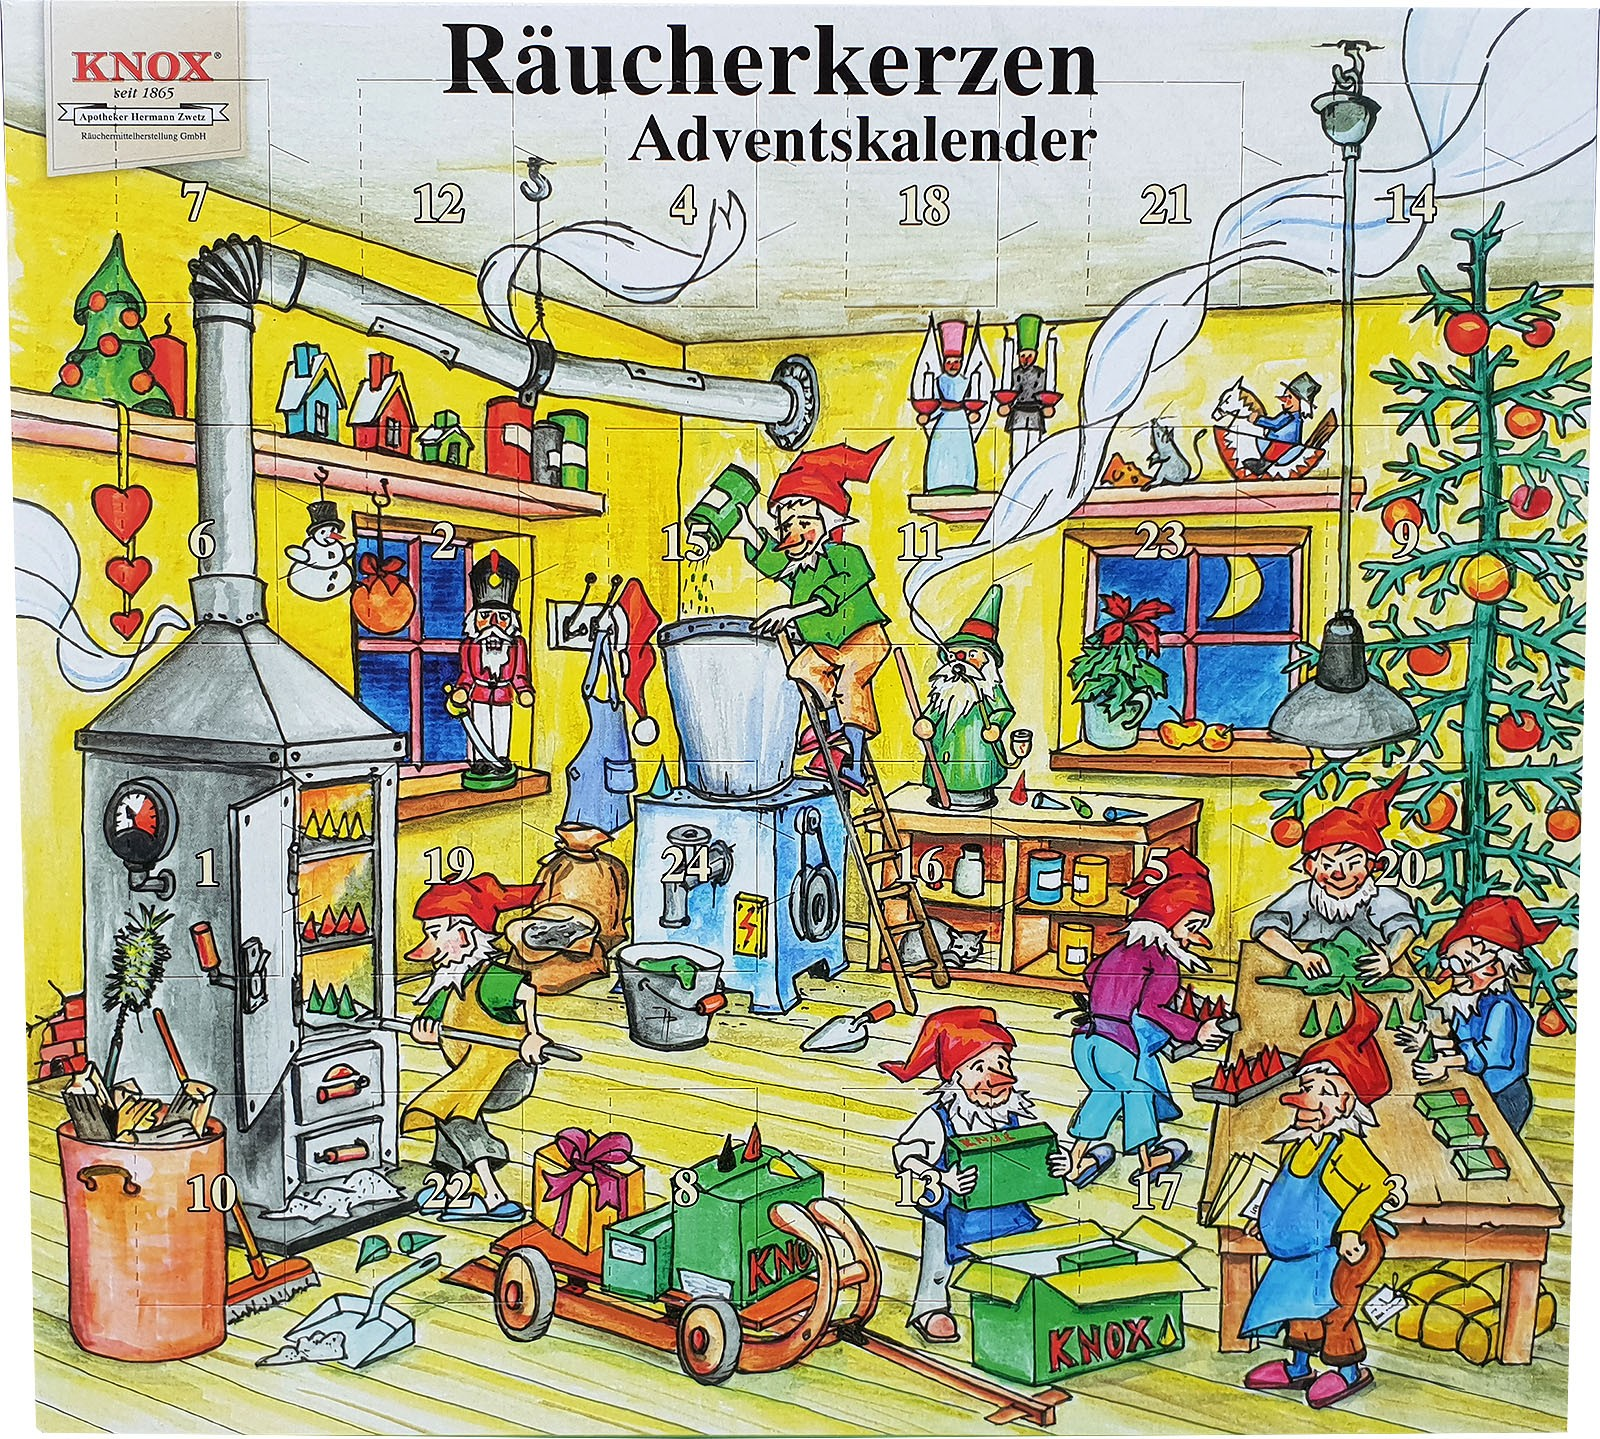 KNOX Räucherkerzen-Adventskalender 2018